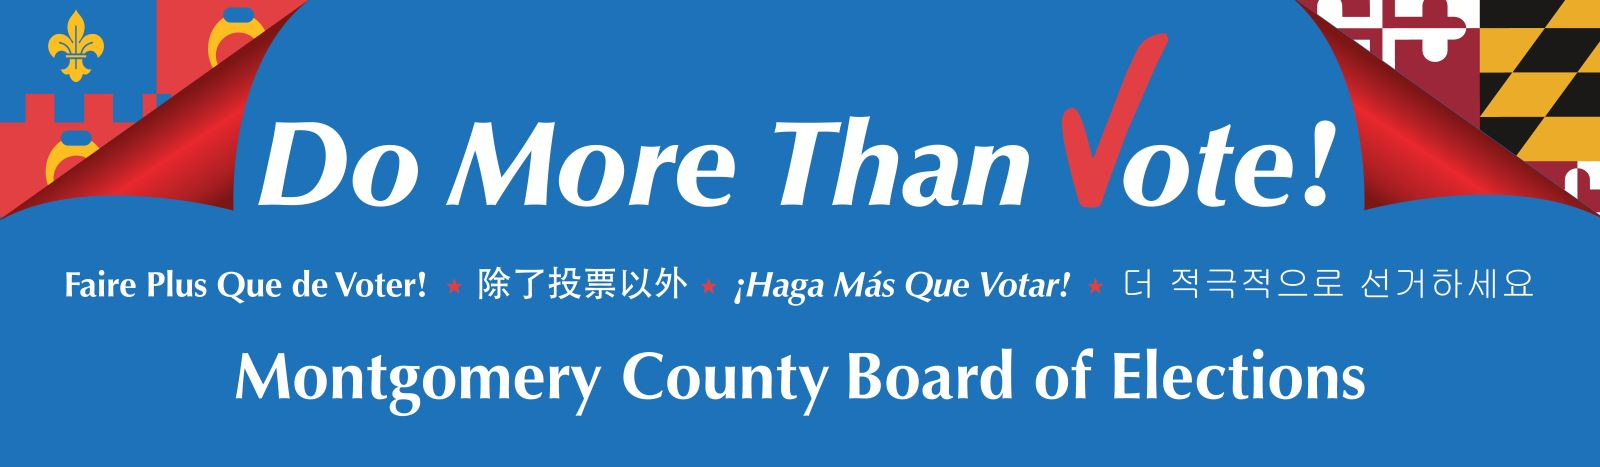 Do more than vote! Montgomery County Board of Elections